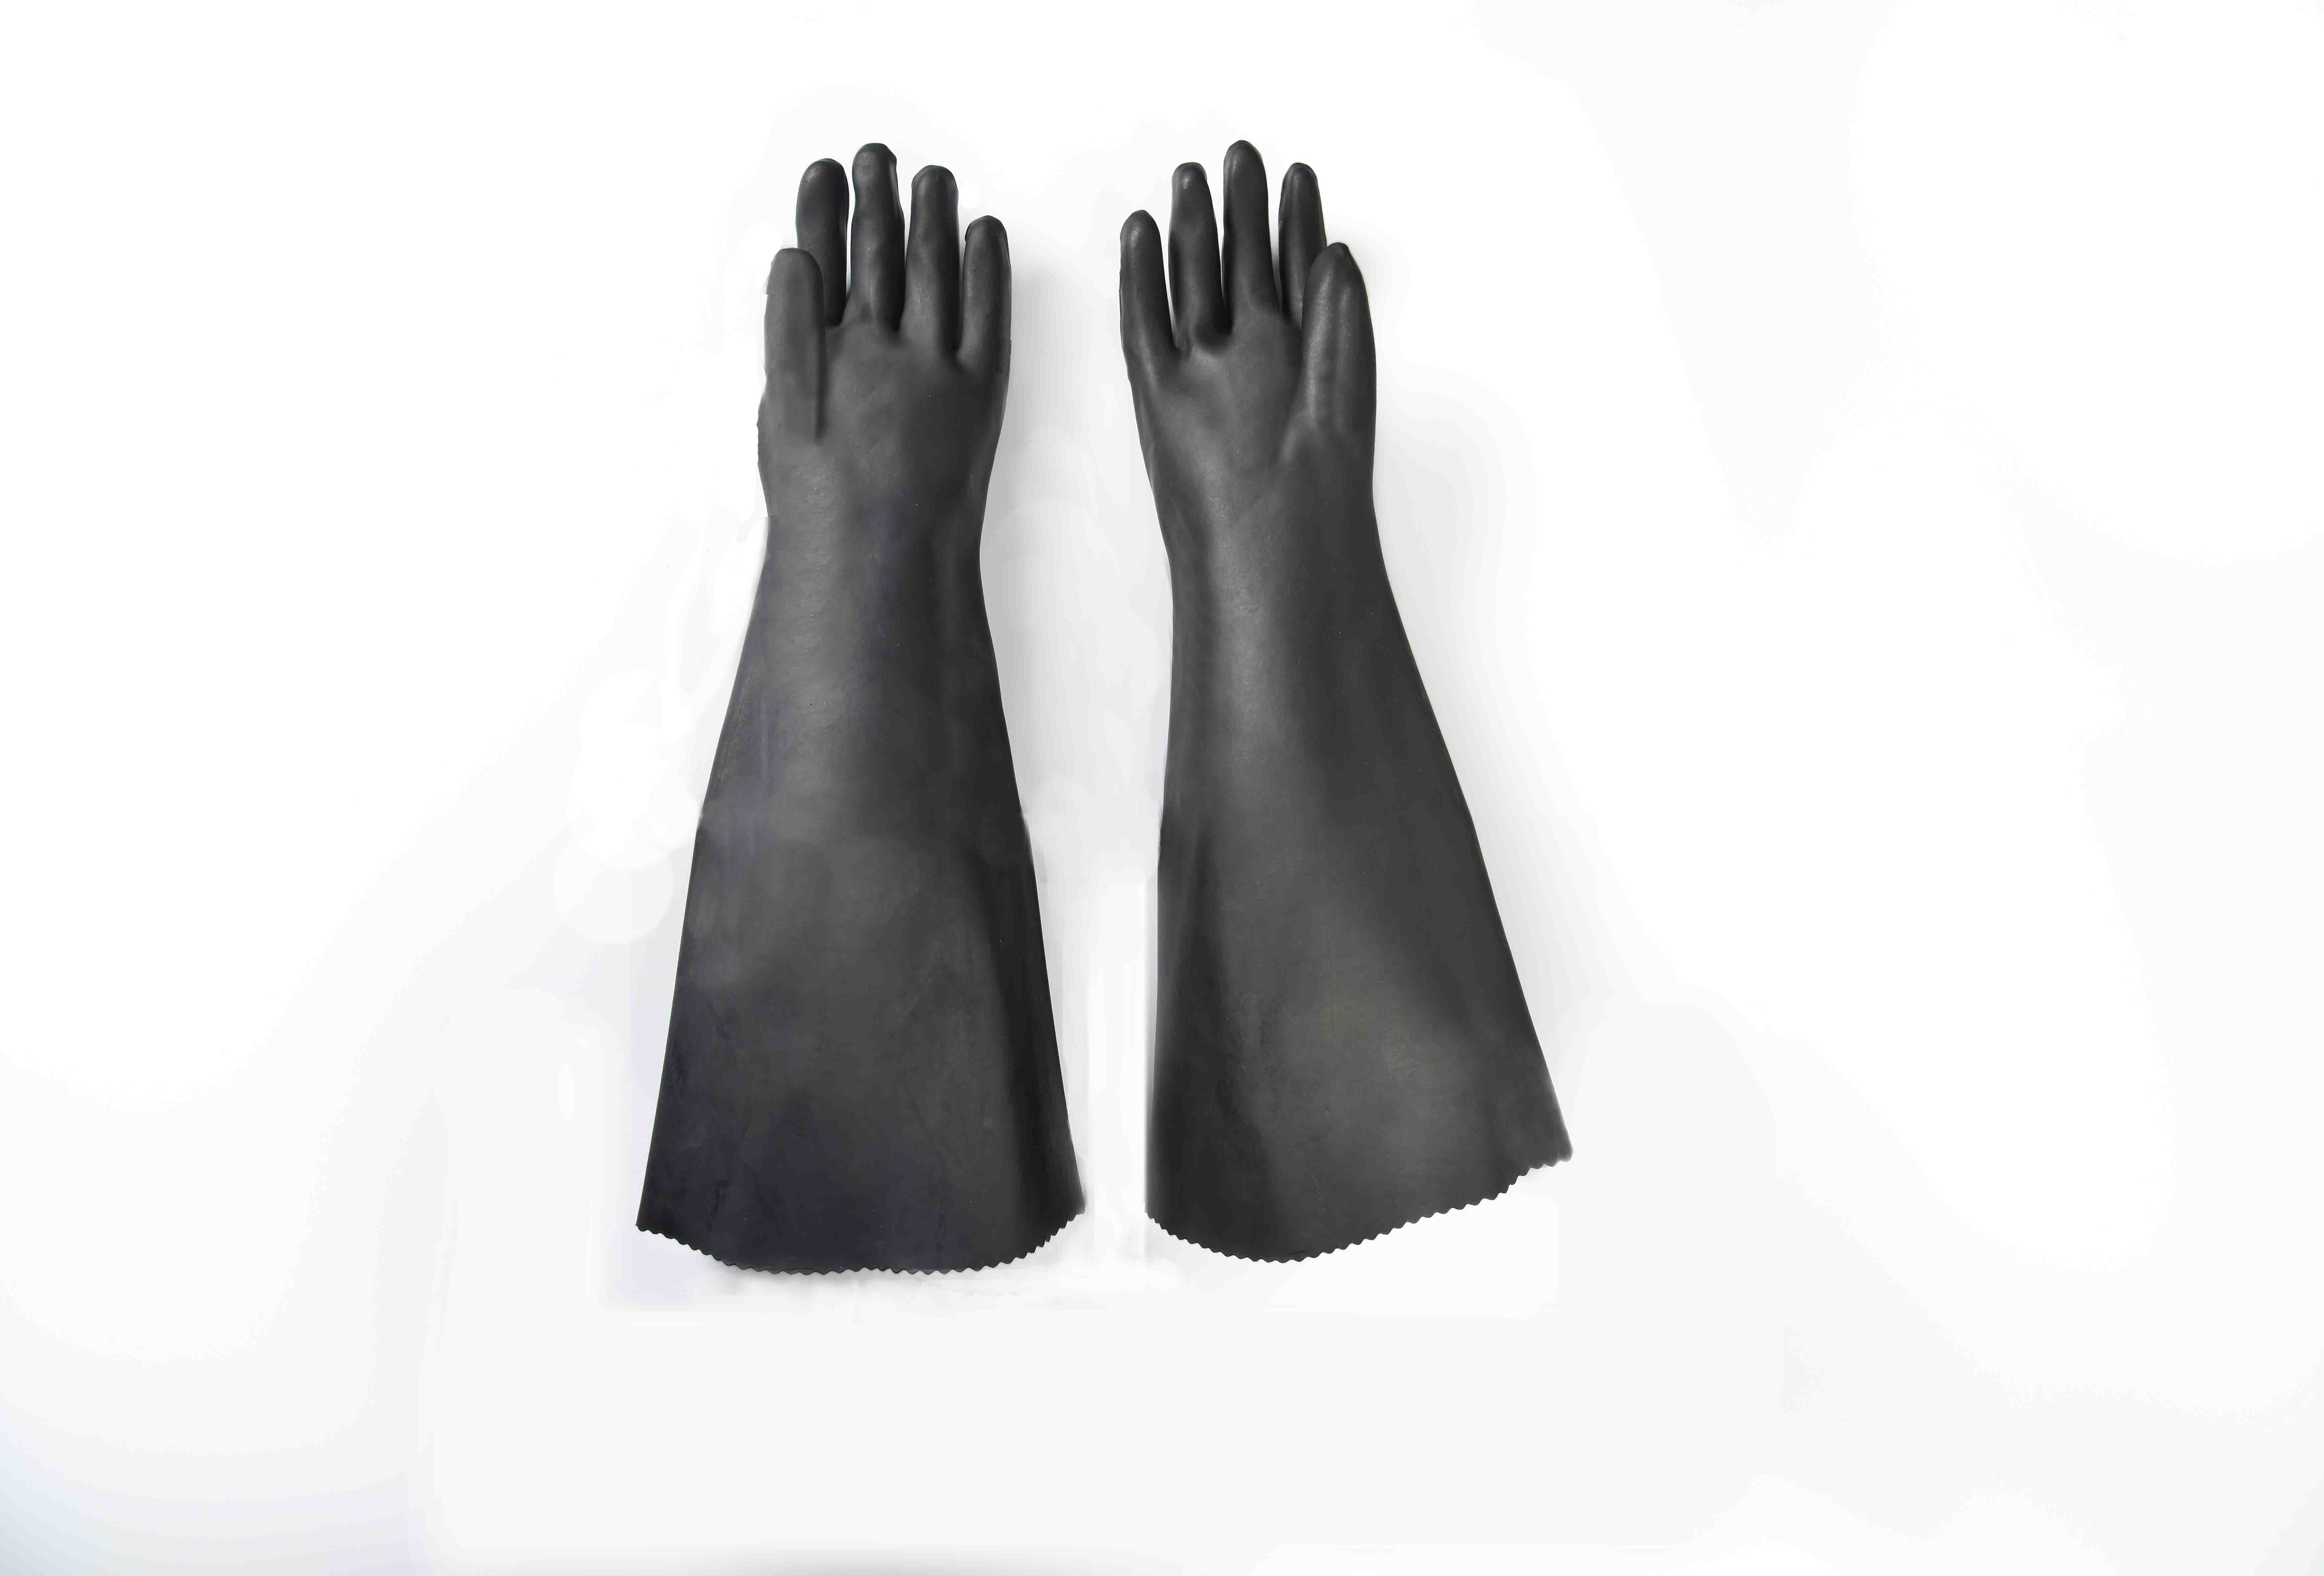 Wholesale price for 24″ rubber glove with cotton linning-smooth finish Hongkong Factory